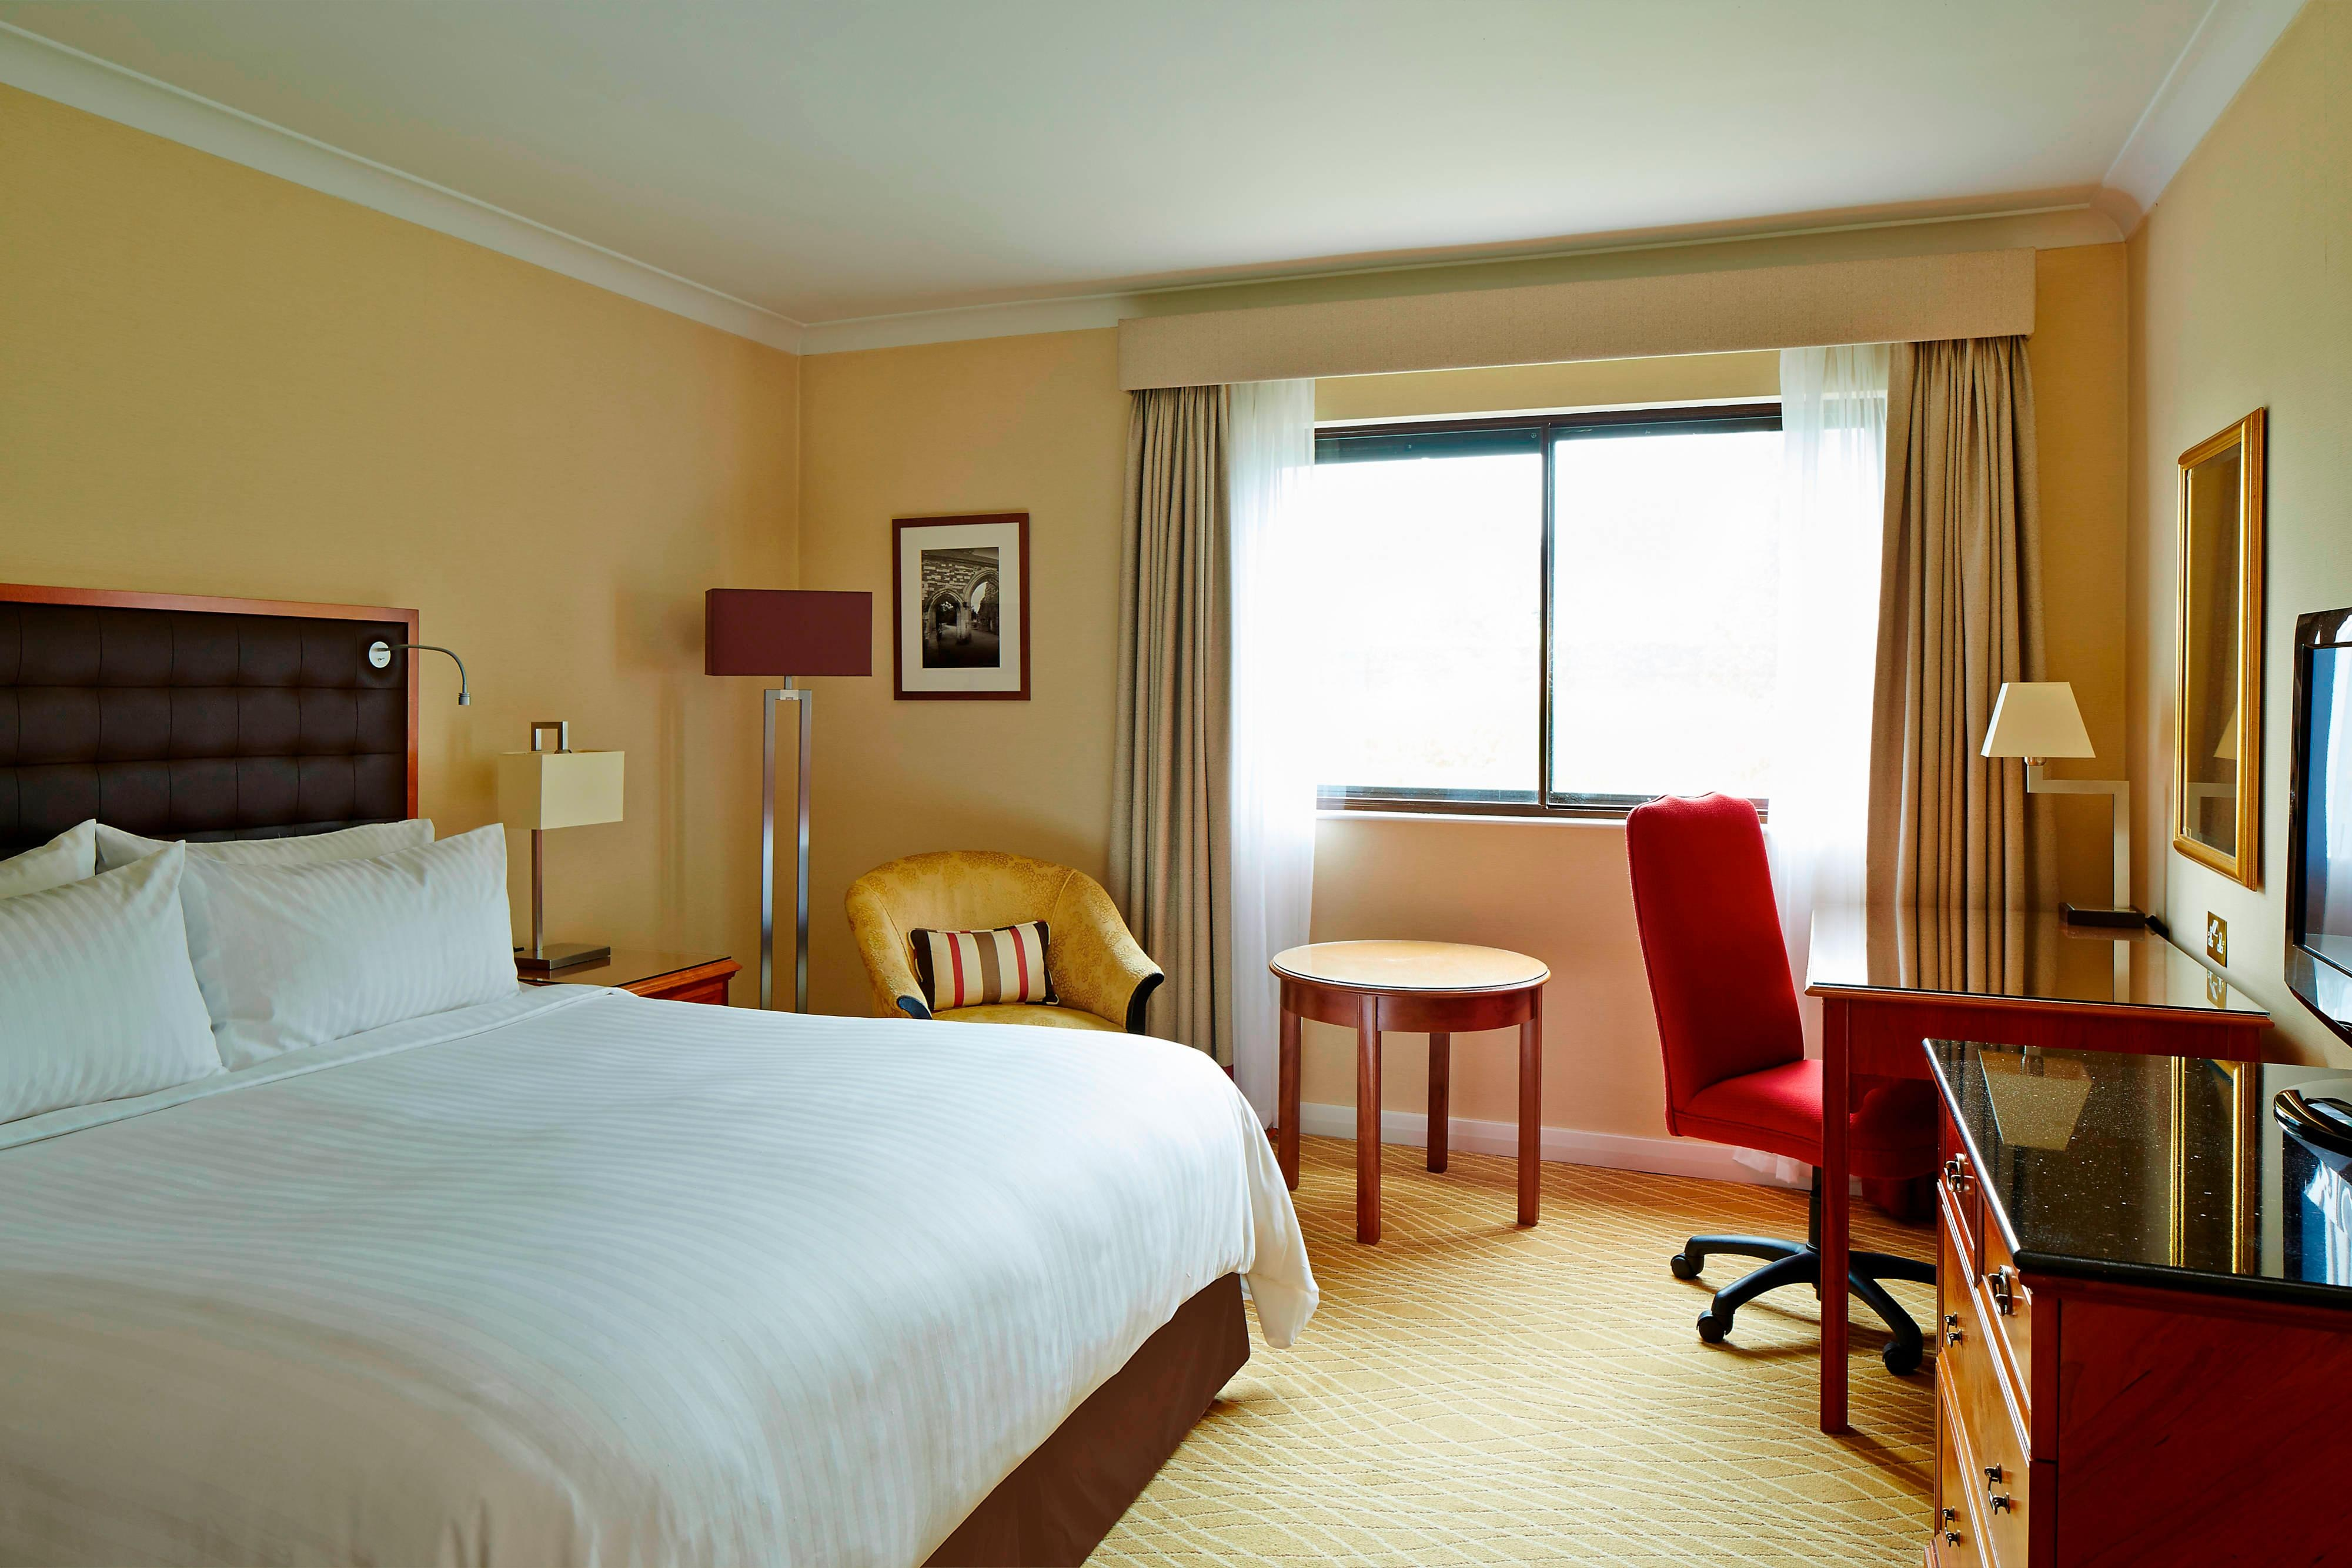 Waltham Abbey Marriott Guest Room